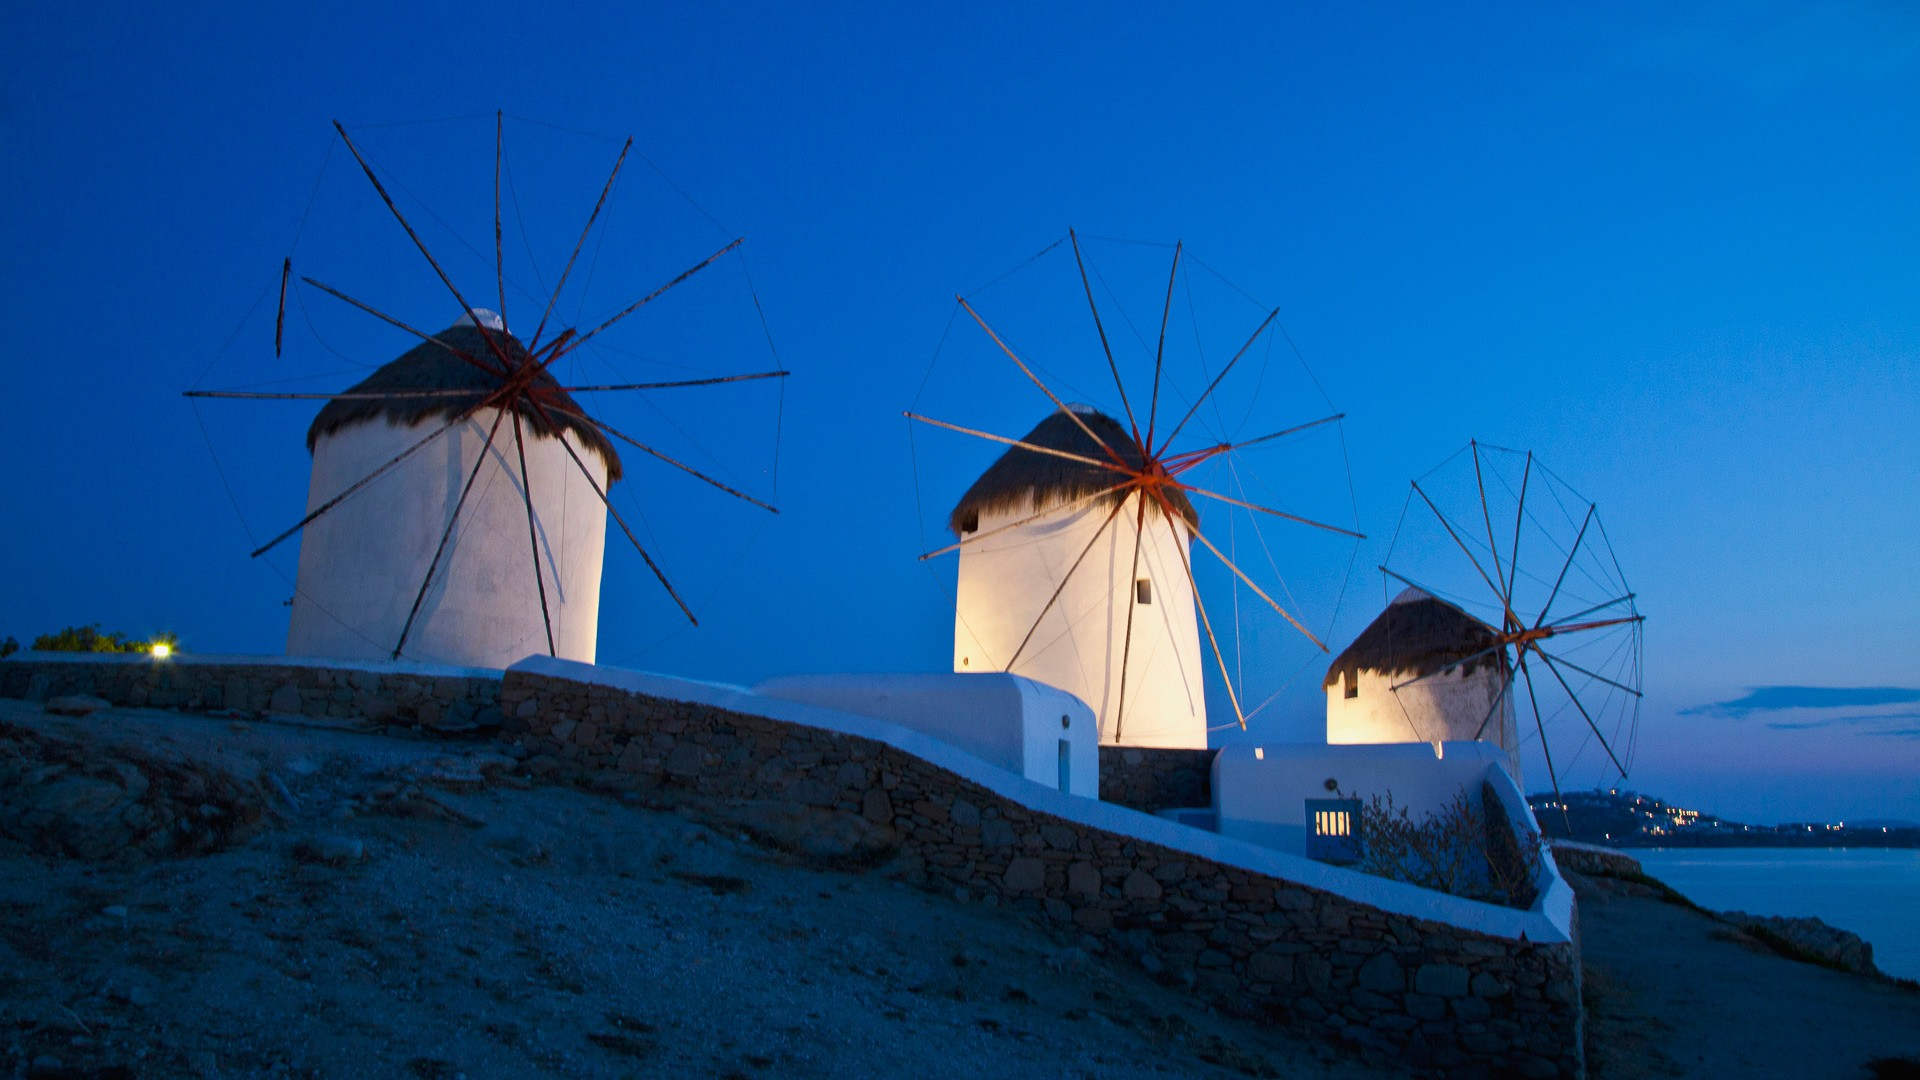 General 1920x1080 Greece mykonos island blue windmill